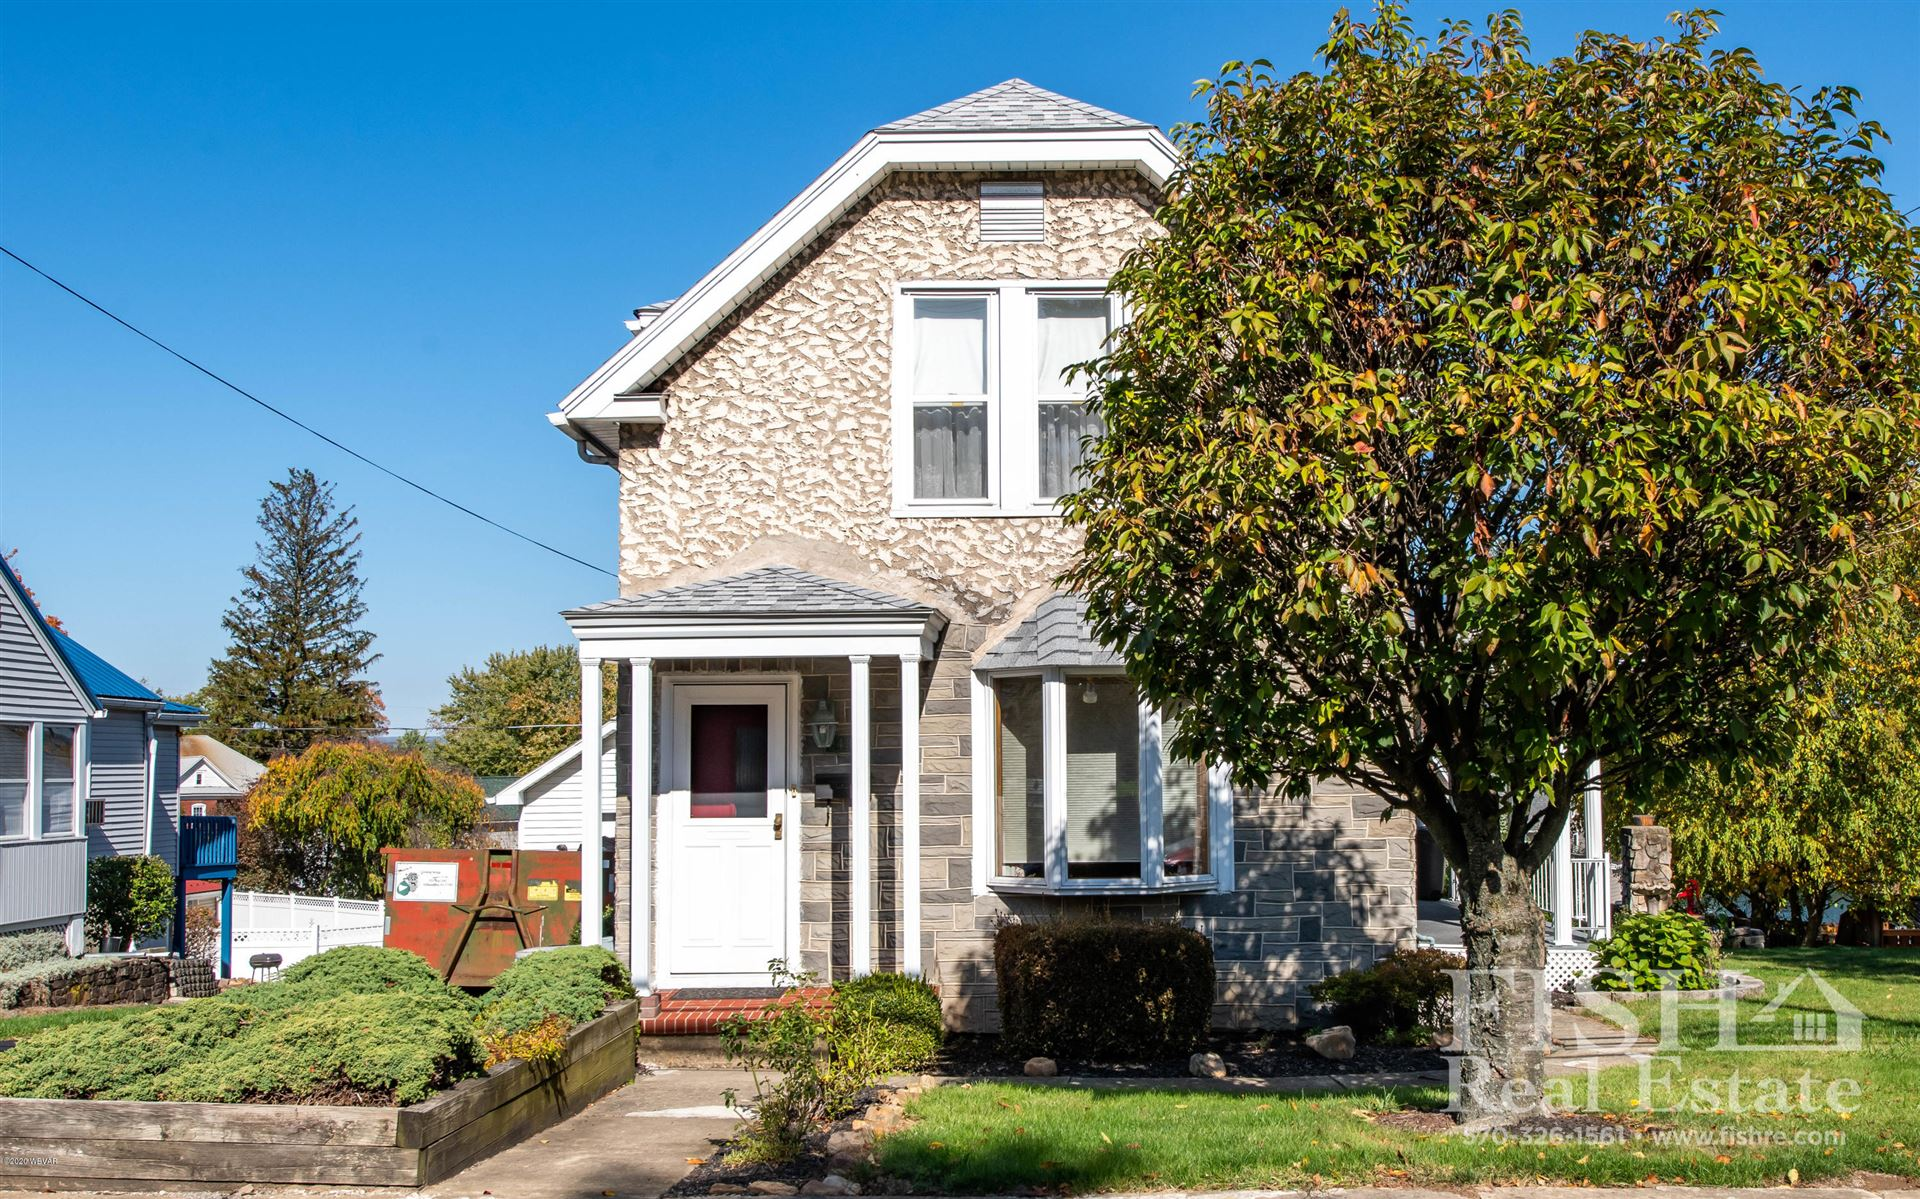 2438 EUCLID AVENUE, South Williamsport, PA 17702 - #: WB-91366